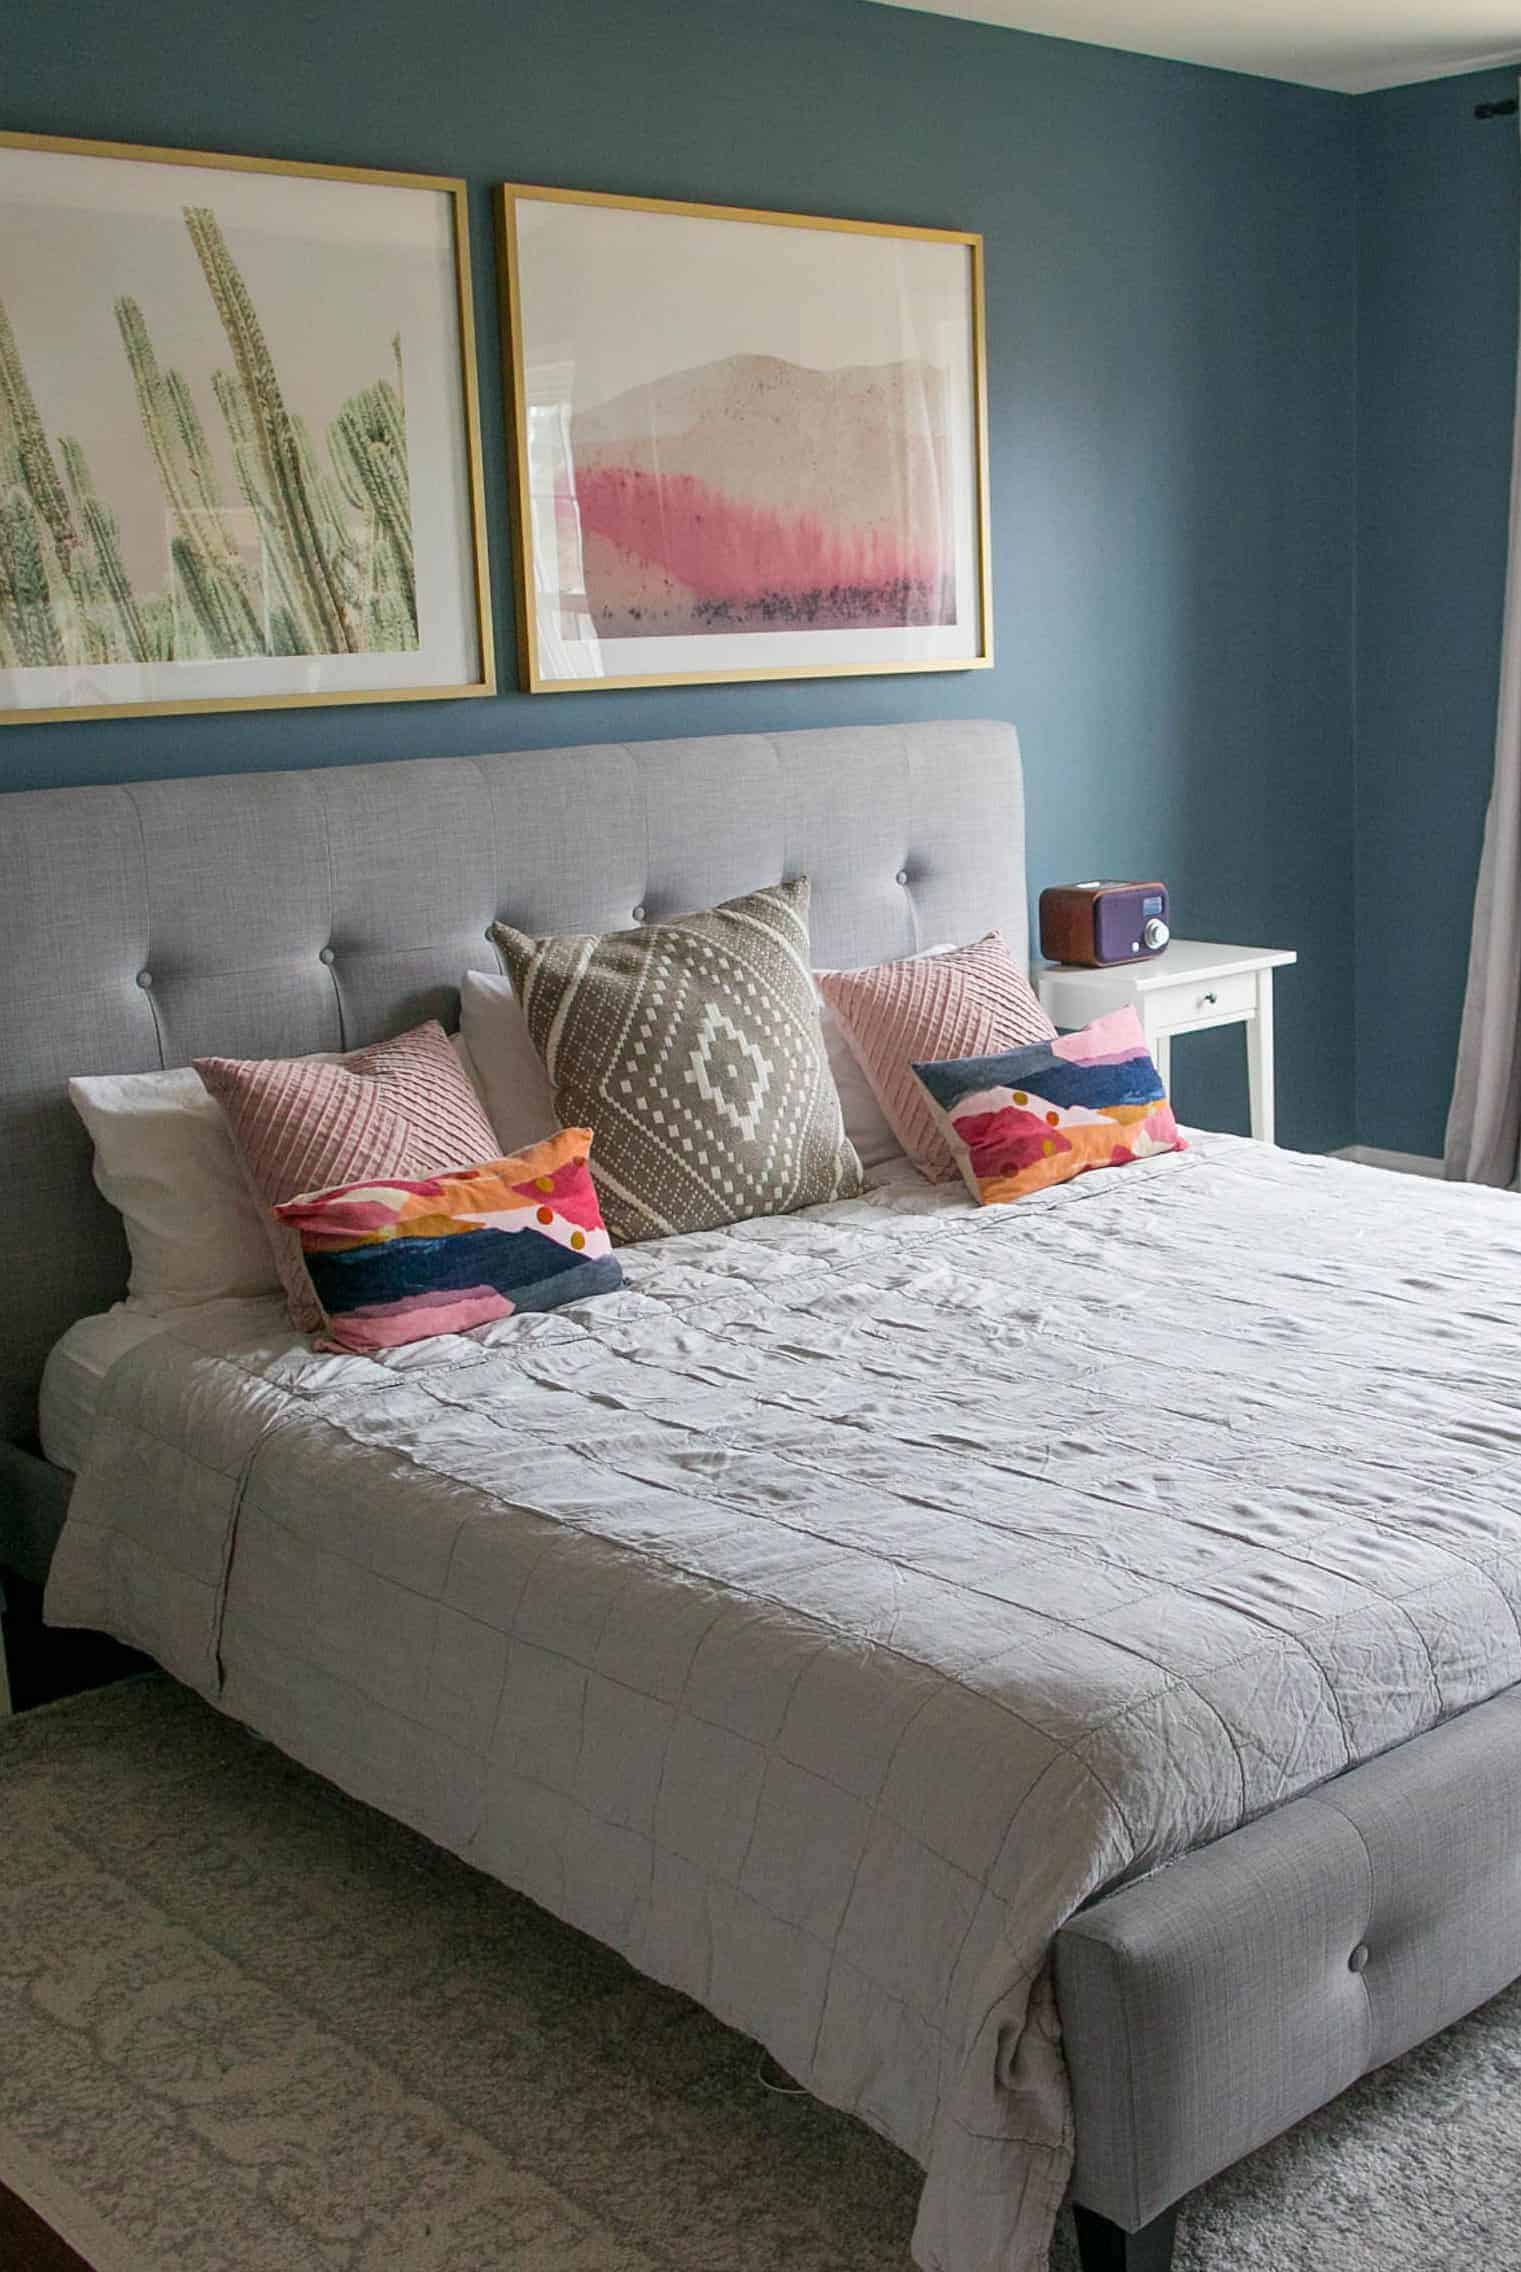 12 tips for a feng shui bedroom makeover